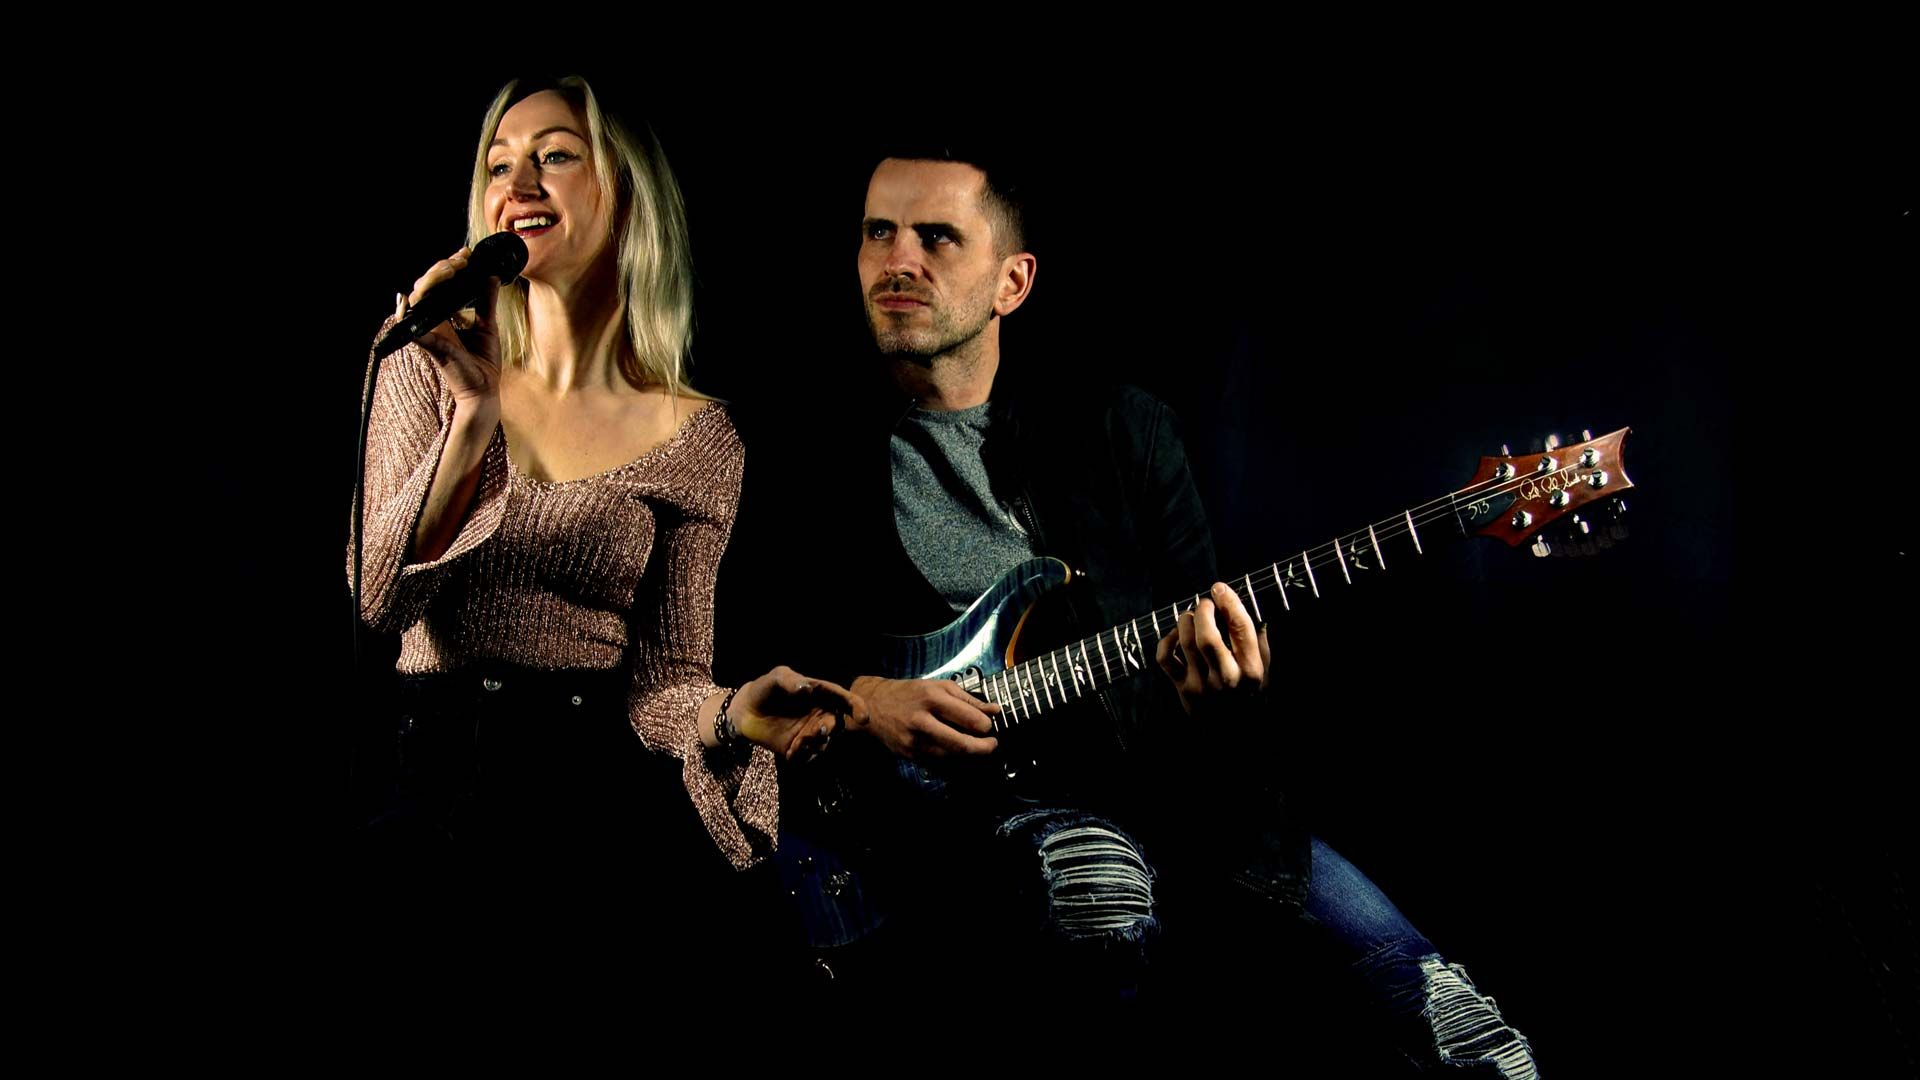 Glow Band Michelle and James on Black with guitar and mic